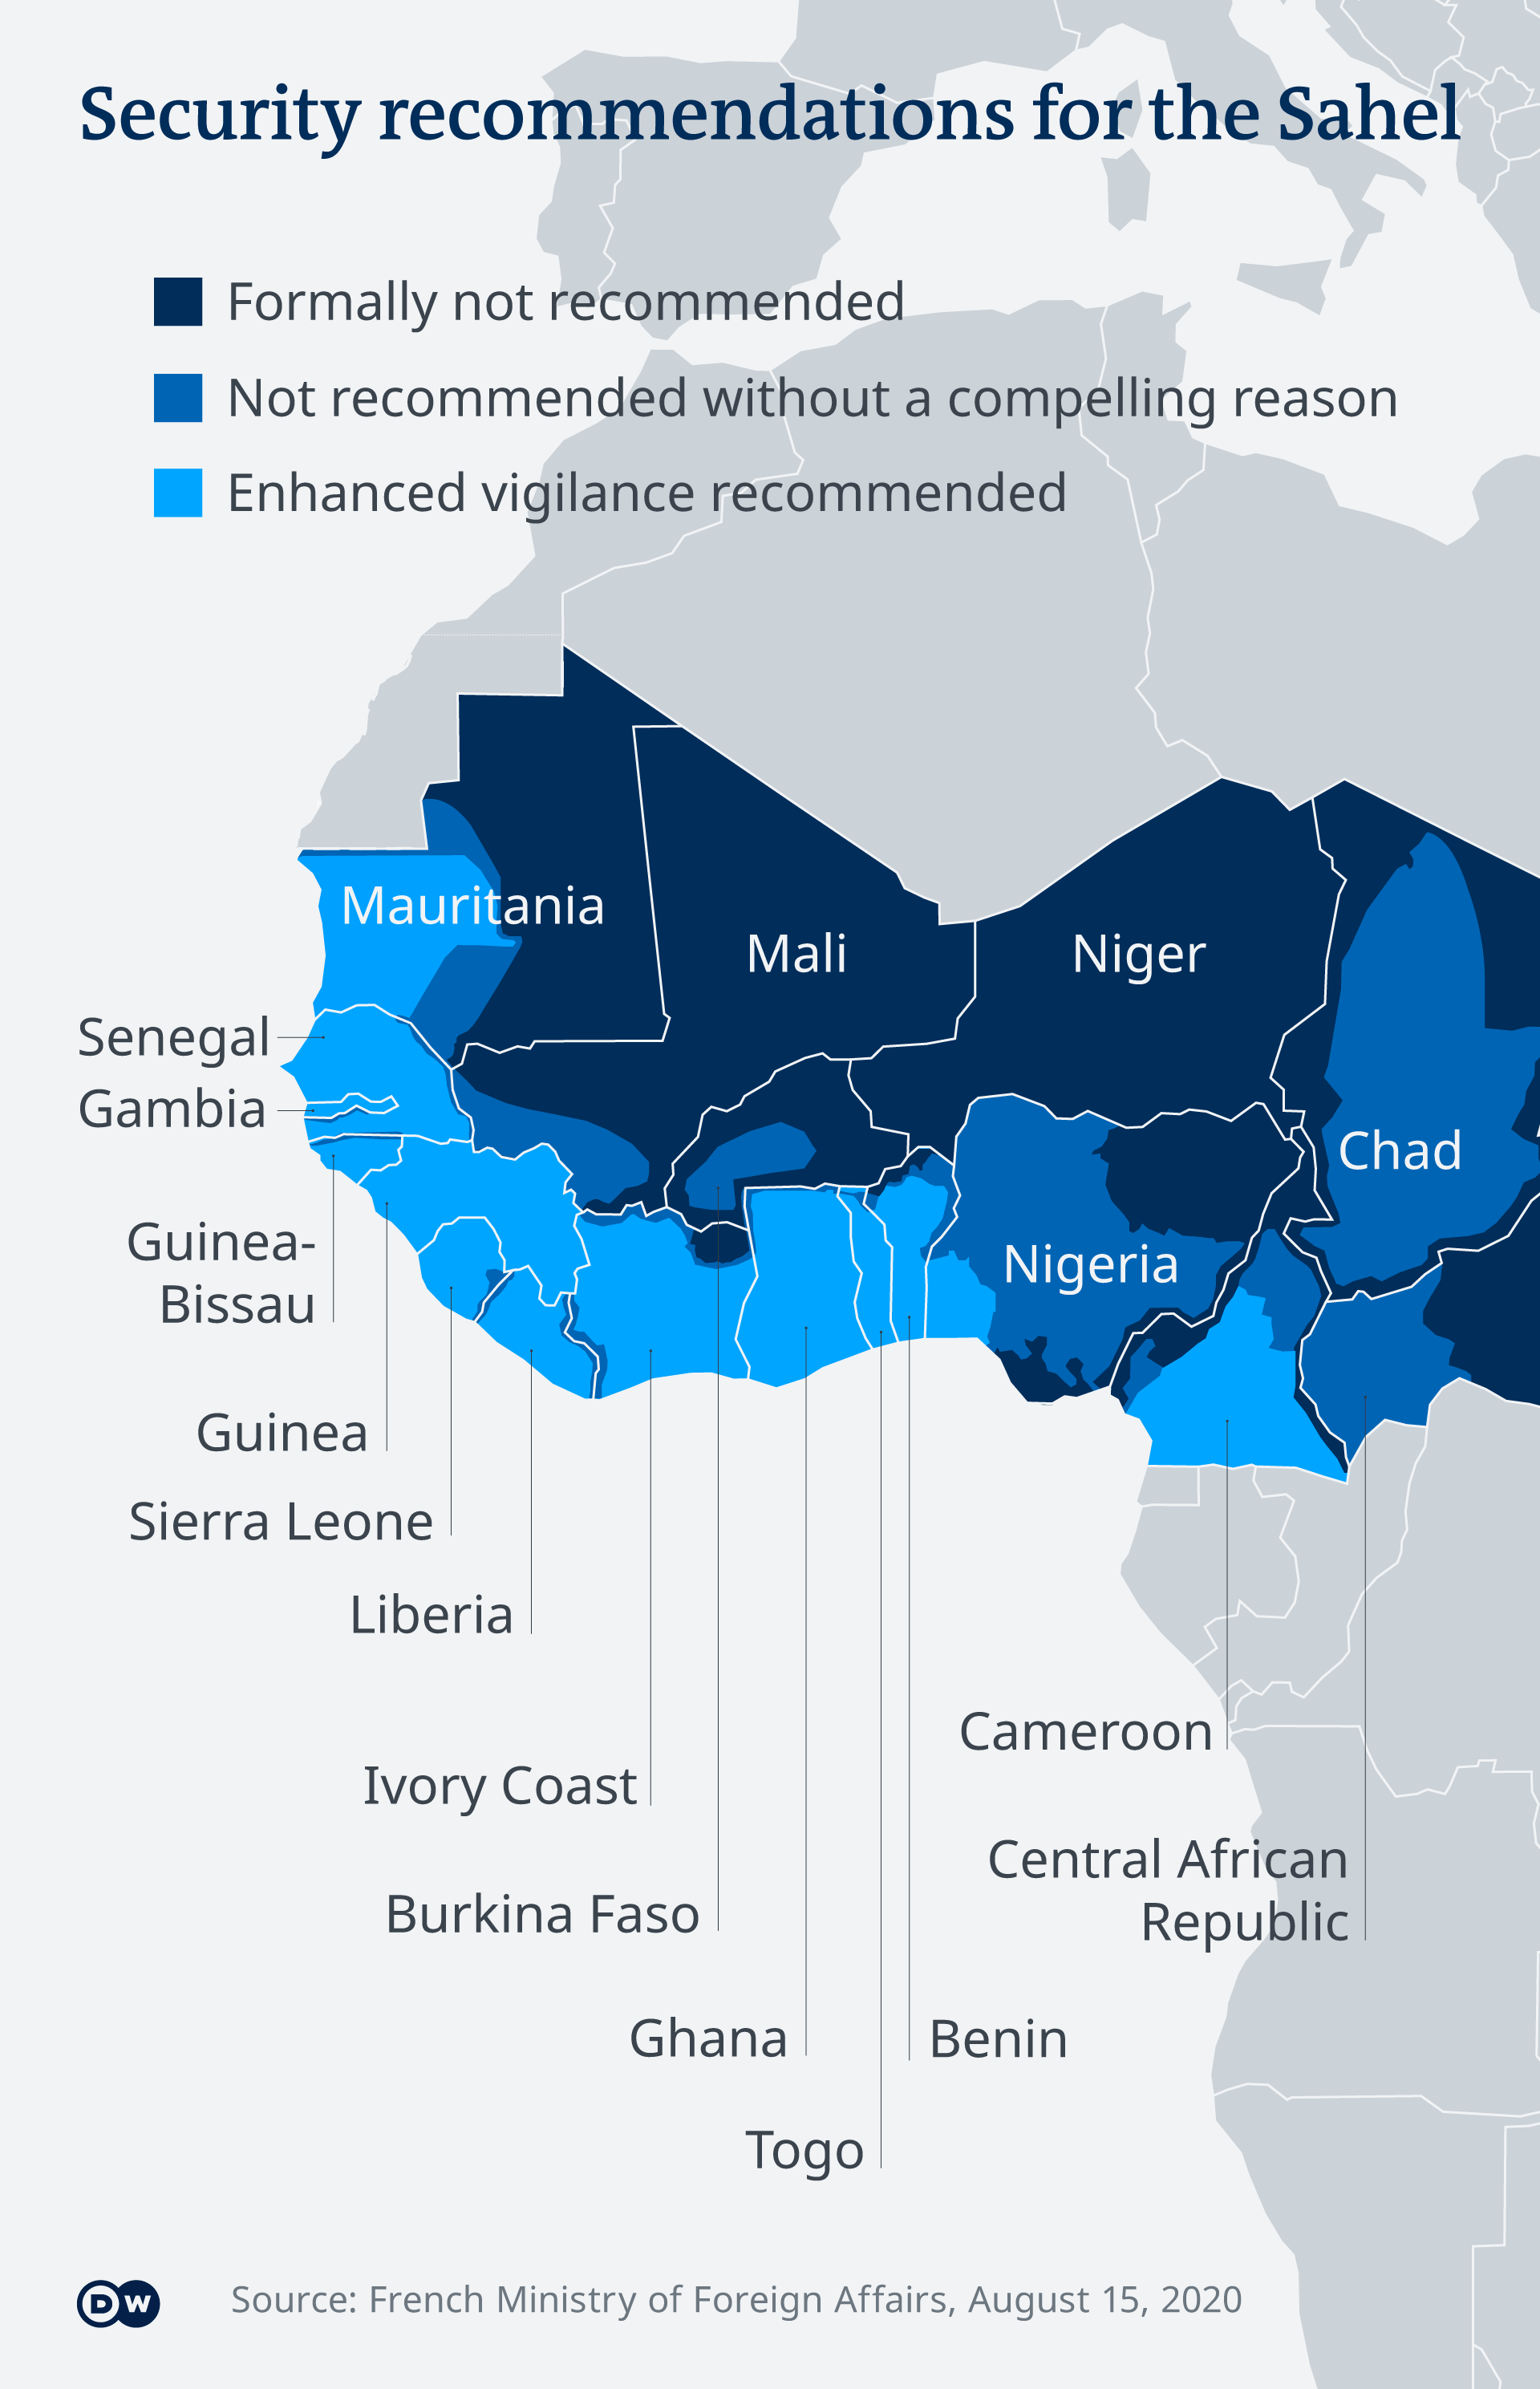 The secuity situation in the Sahel region